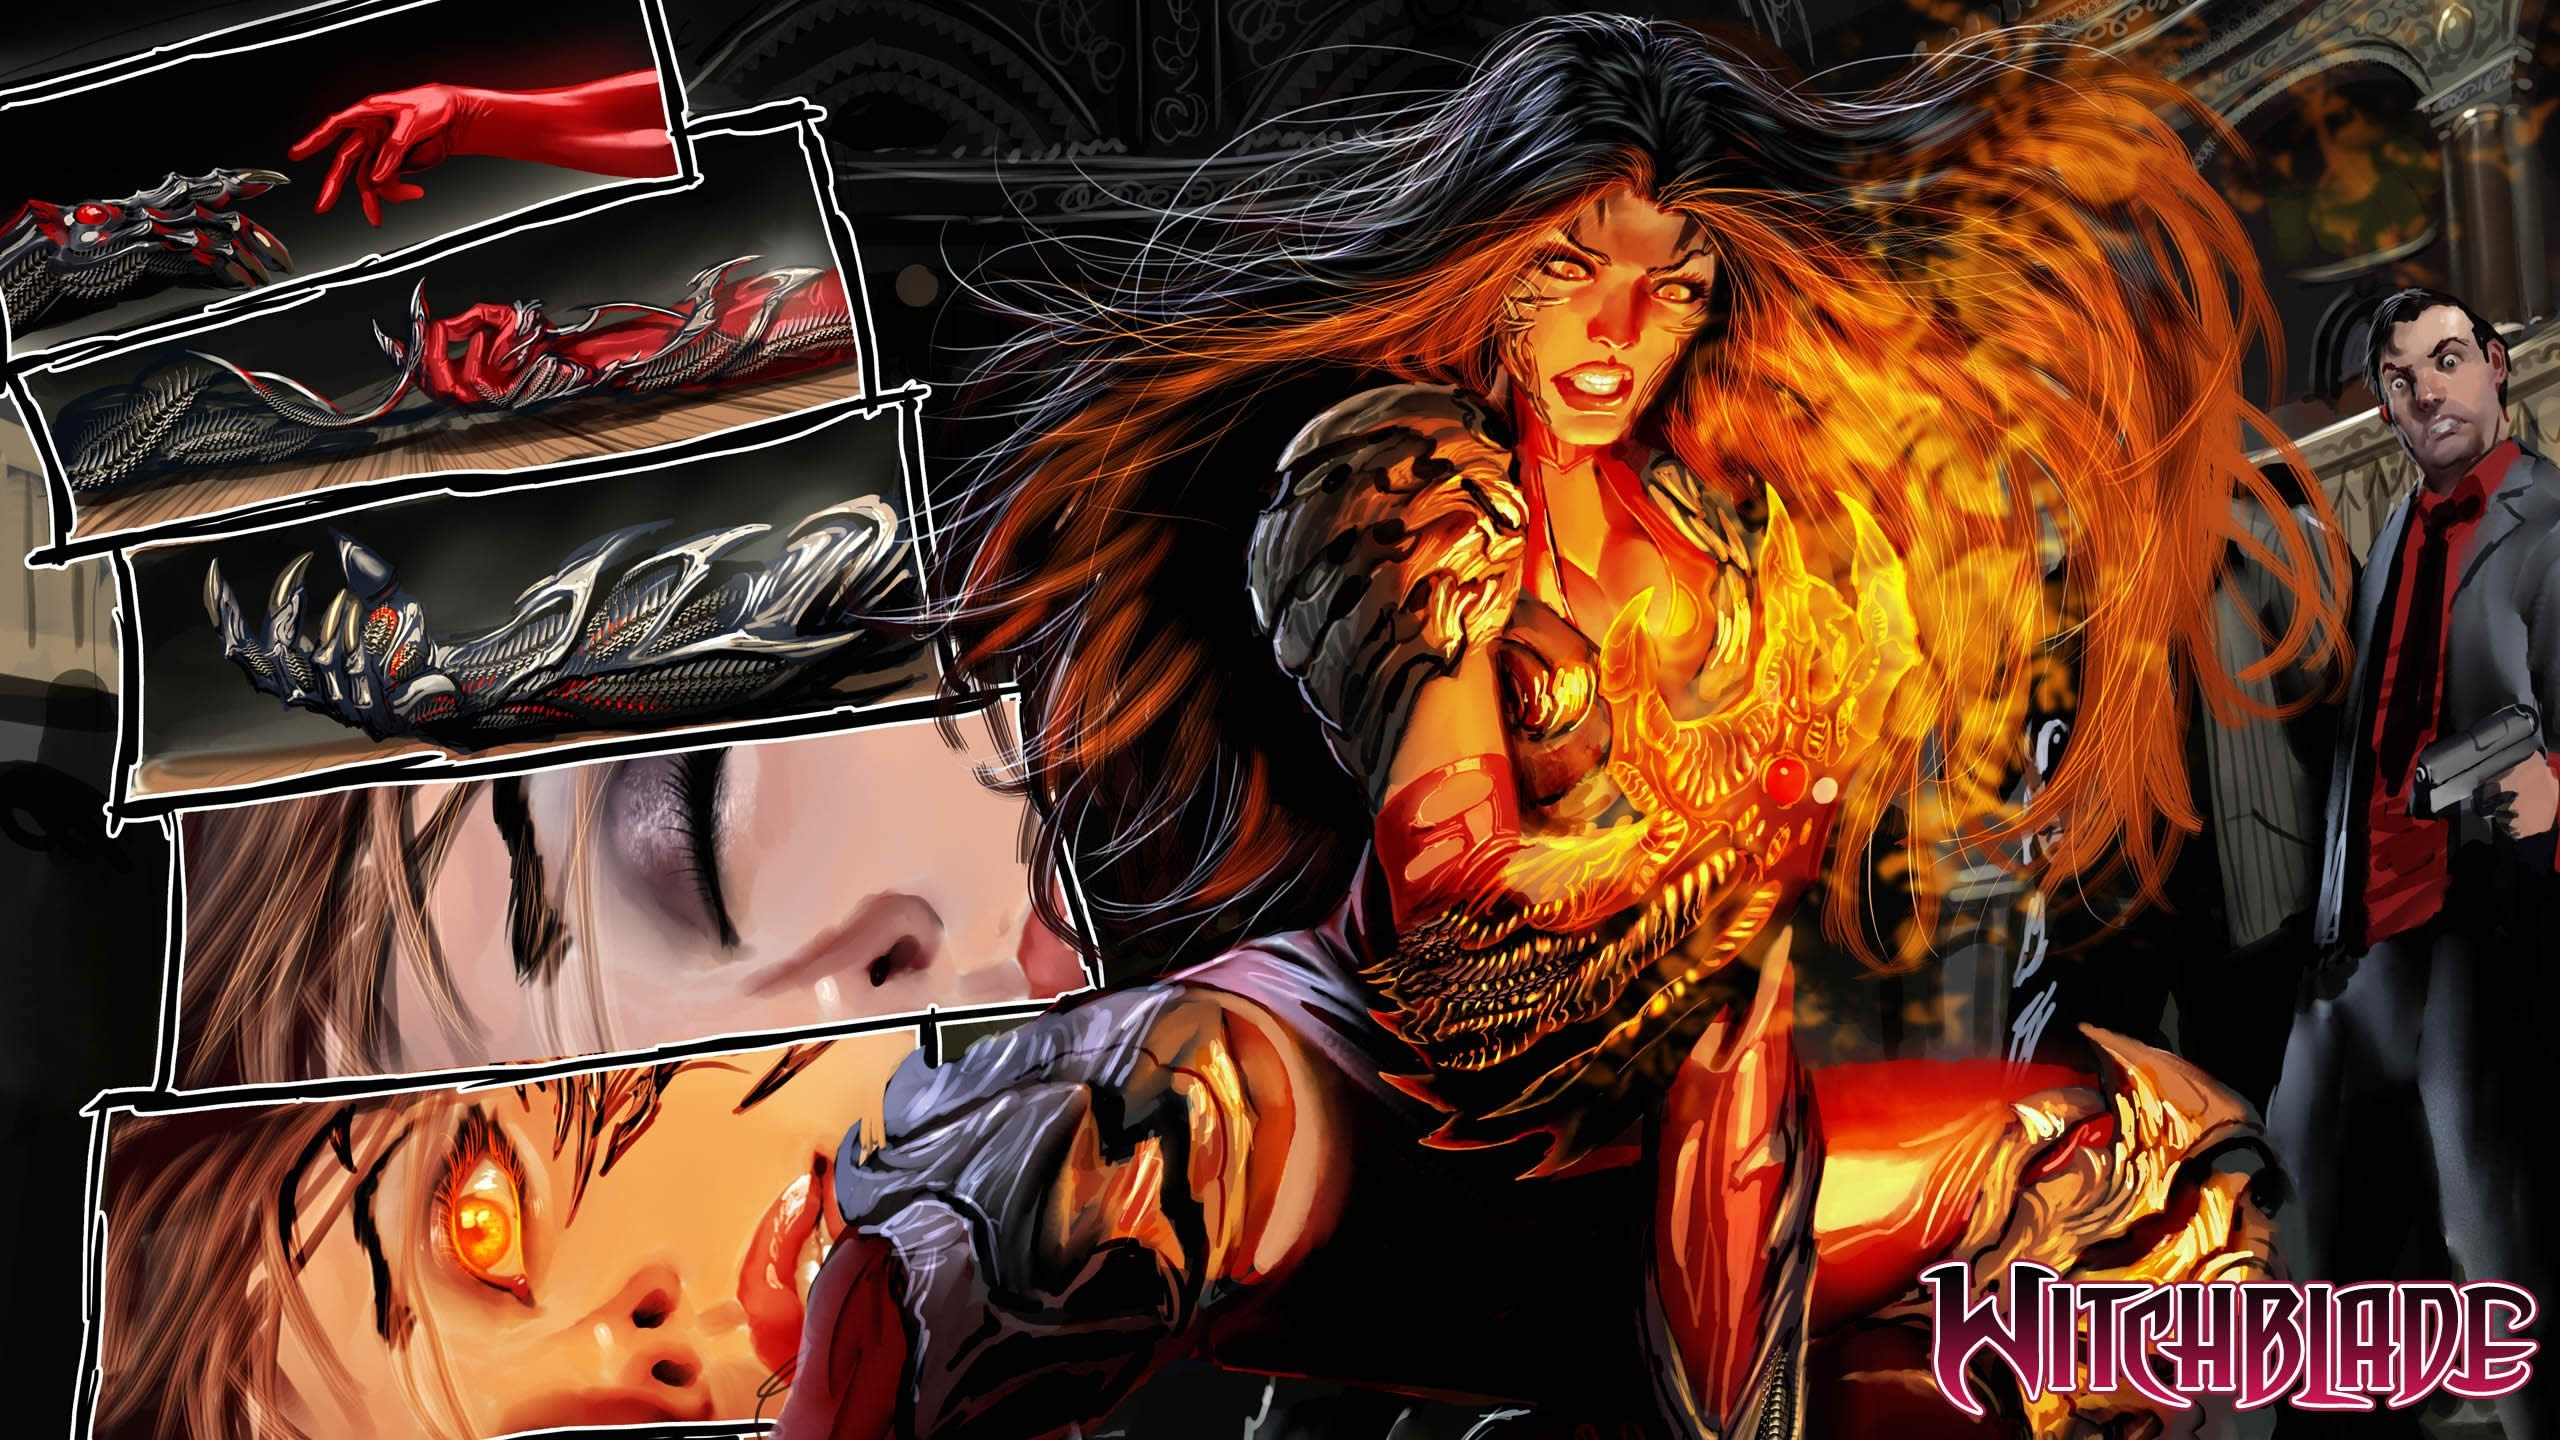 2560x1440 HQ Definition Wallpaper Desktop witchblade. Free witchblade